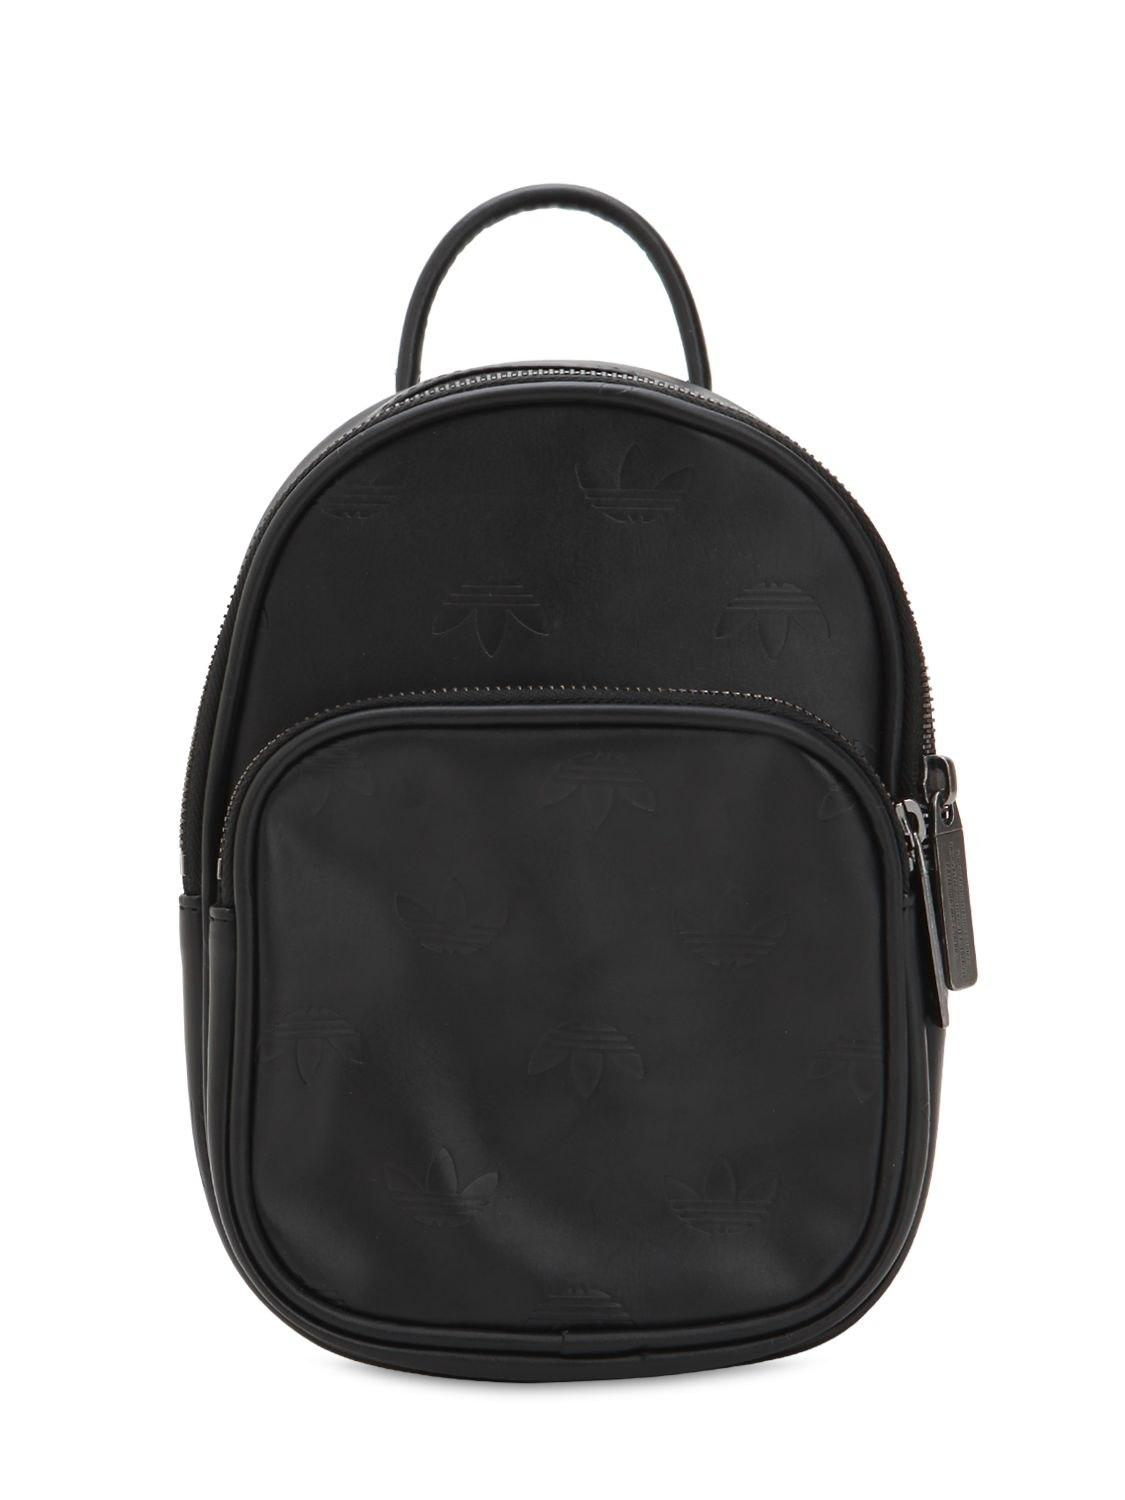 29c5e2095e22 Lyst - adidas Originals Mini Classic X Faux Leather Backpack in Black